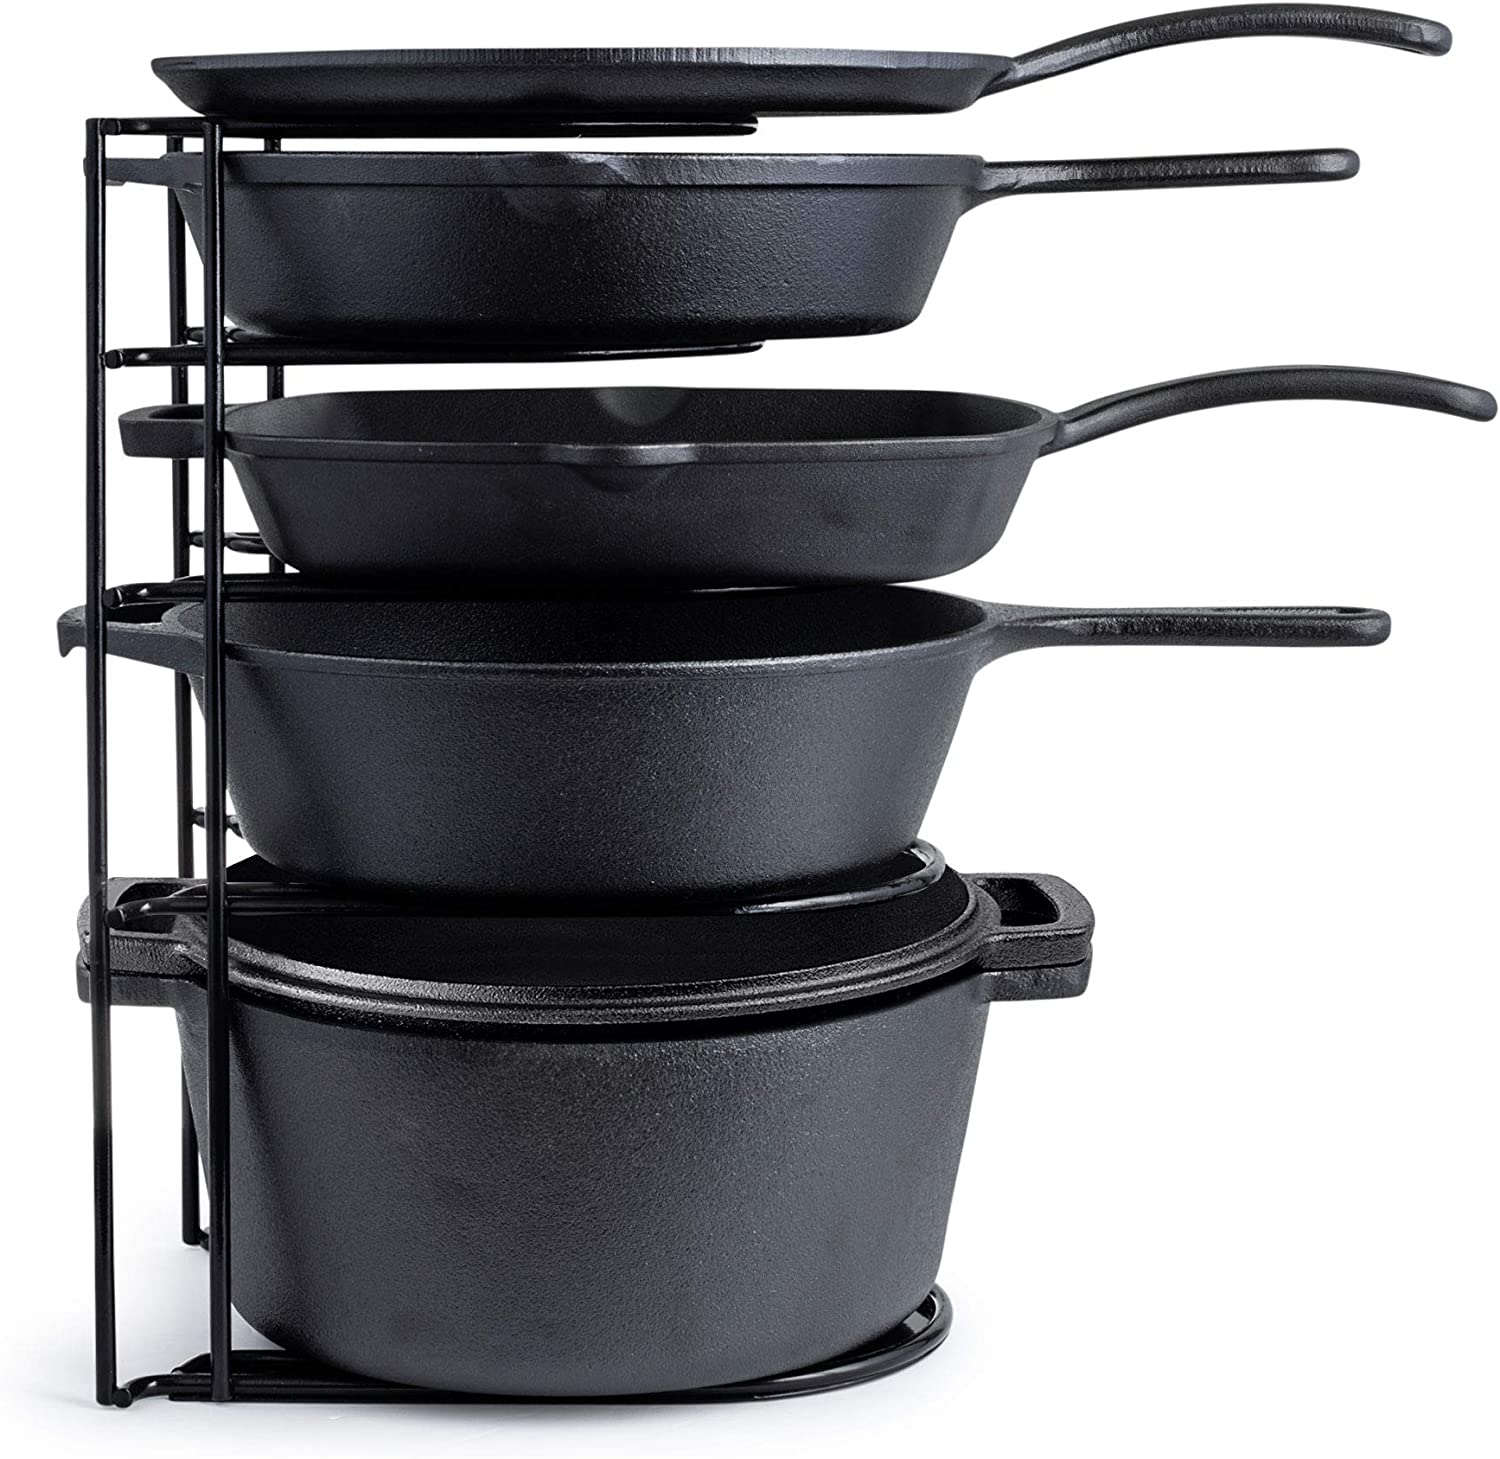 Heavy Duty Pan Organizer, Extra Large 5 Tier Rack - Holds a Dutch Oven - Durable Steel Construction - Space Saving Kitchen Storage - No Assembly Required - Black. 15-inch